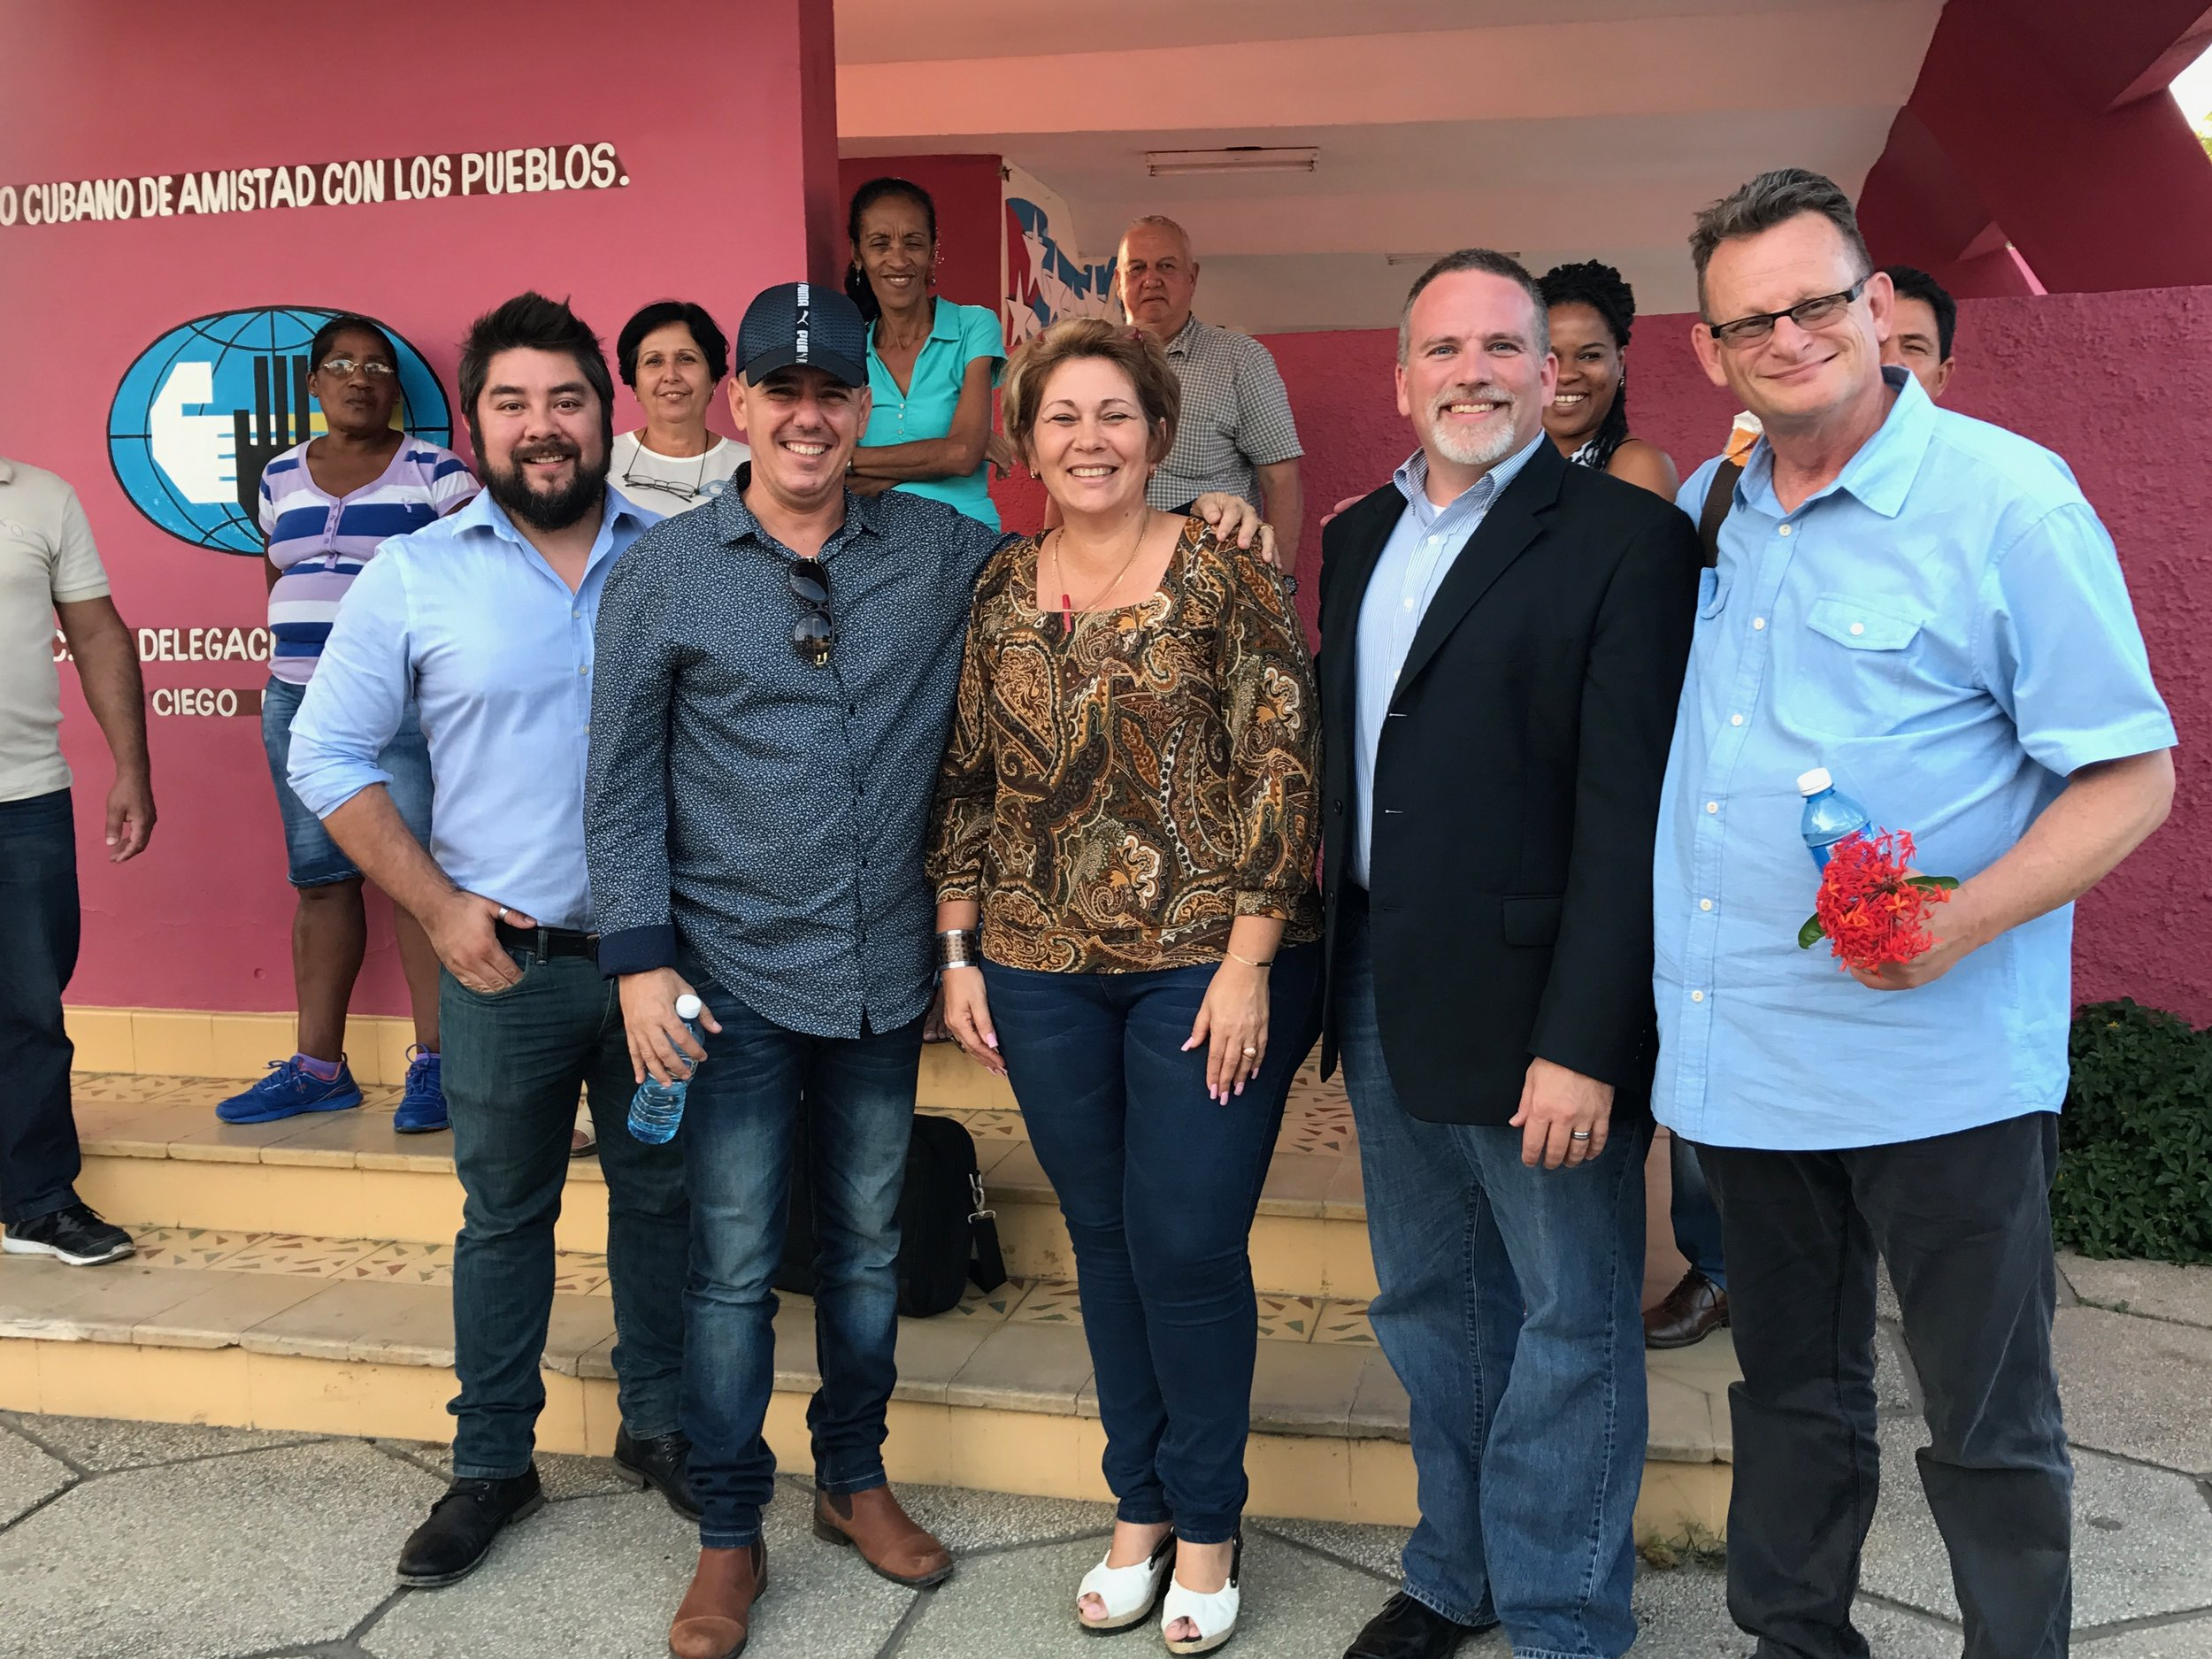 Connect Global Team in Cuba - Thank You for your Support